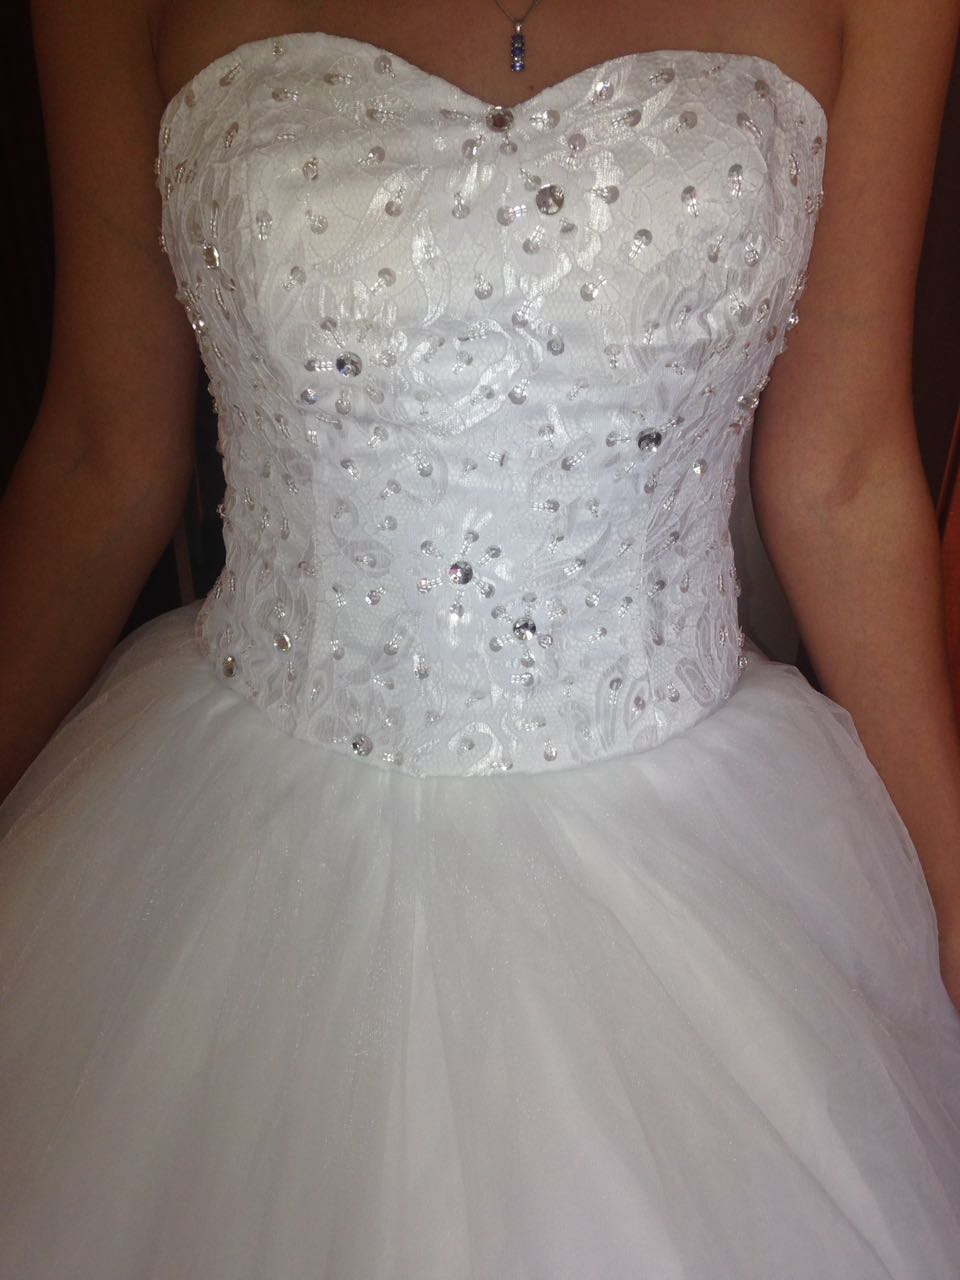 New Princess Wedding Dress - Never Worn